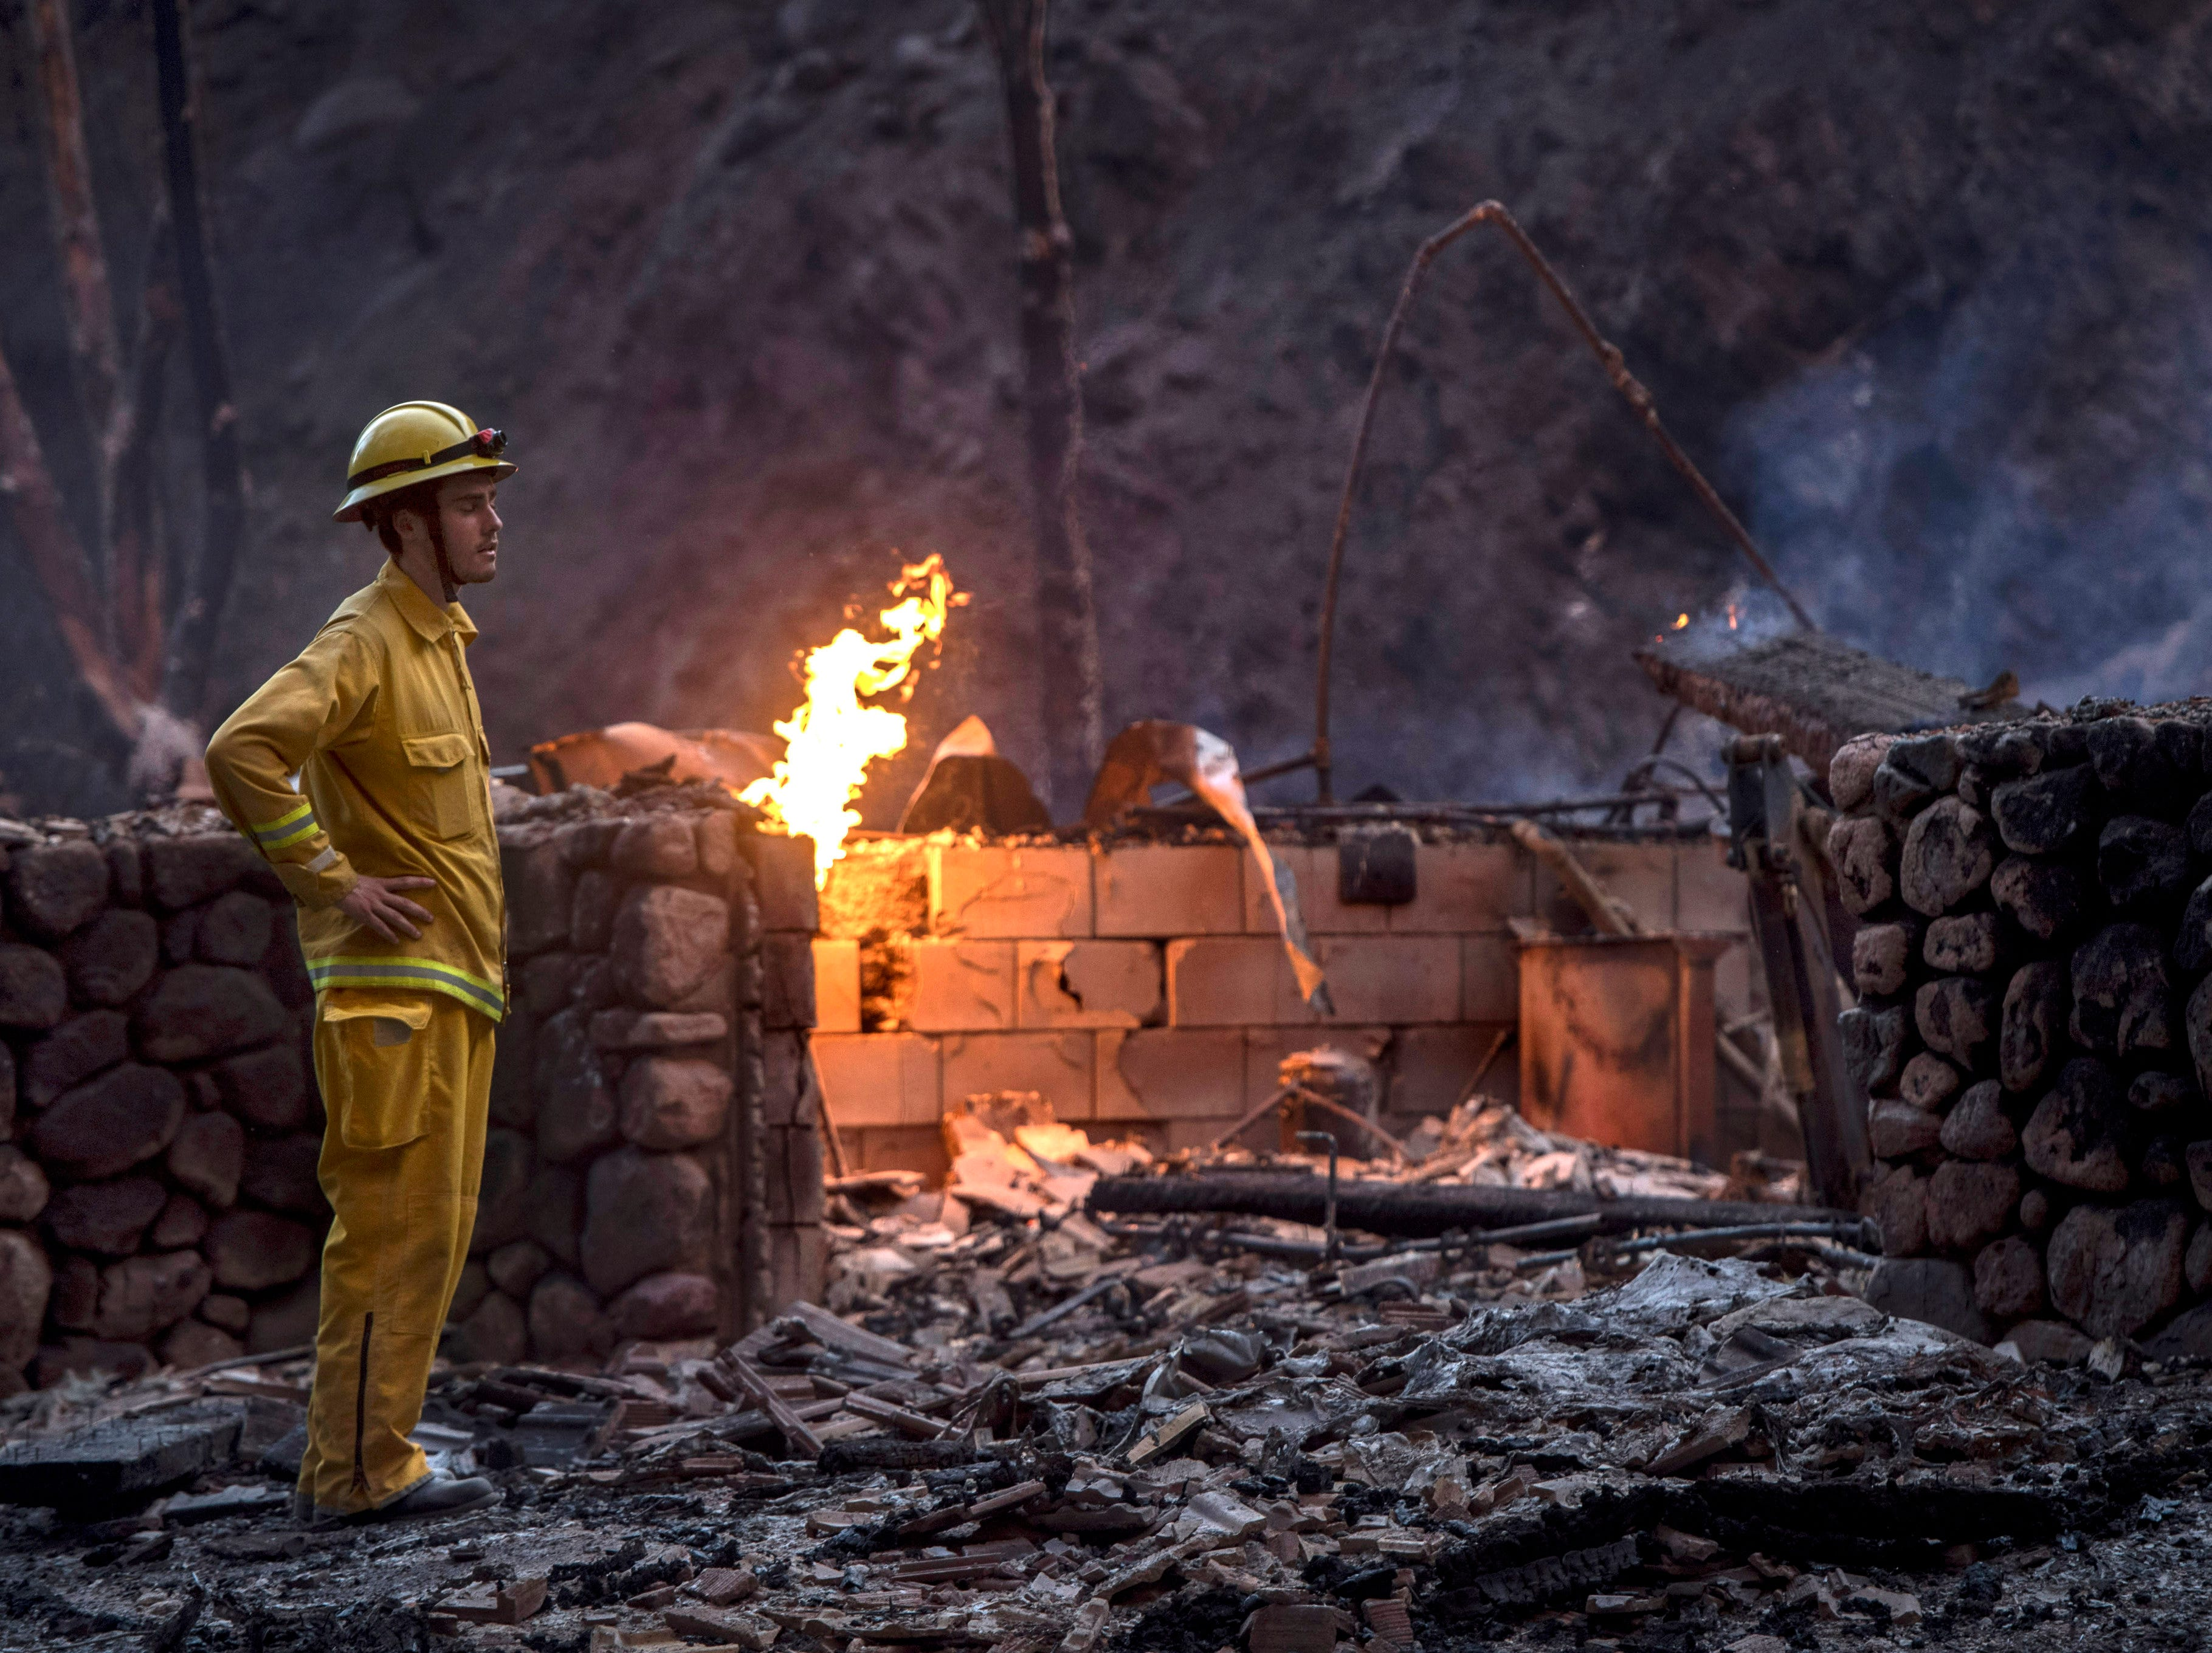 Holy Jim volunteer firefighter Luke Senger stands next to a home destroyed the Holy Fire in Trabuco Canyon, Calif., on Monday, Aug 6, 2018. (Mindy Schauer/The Orange County Register via AP)